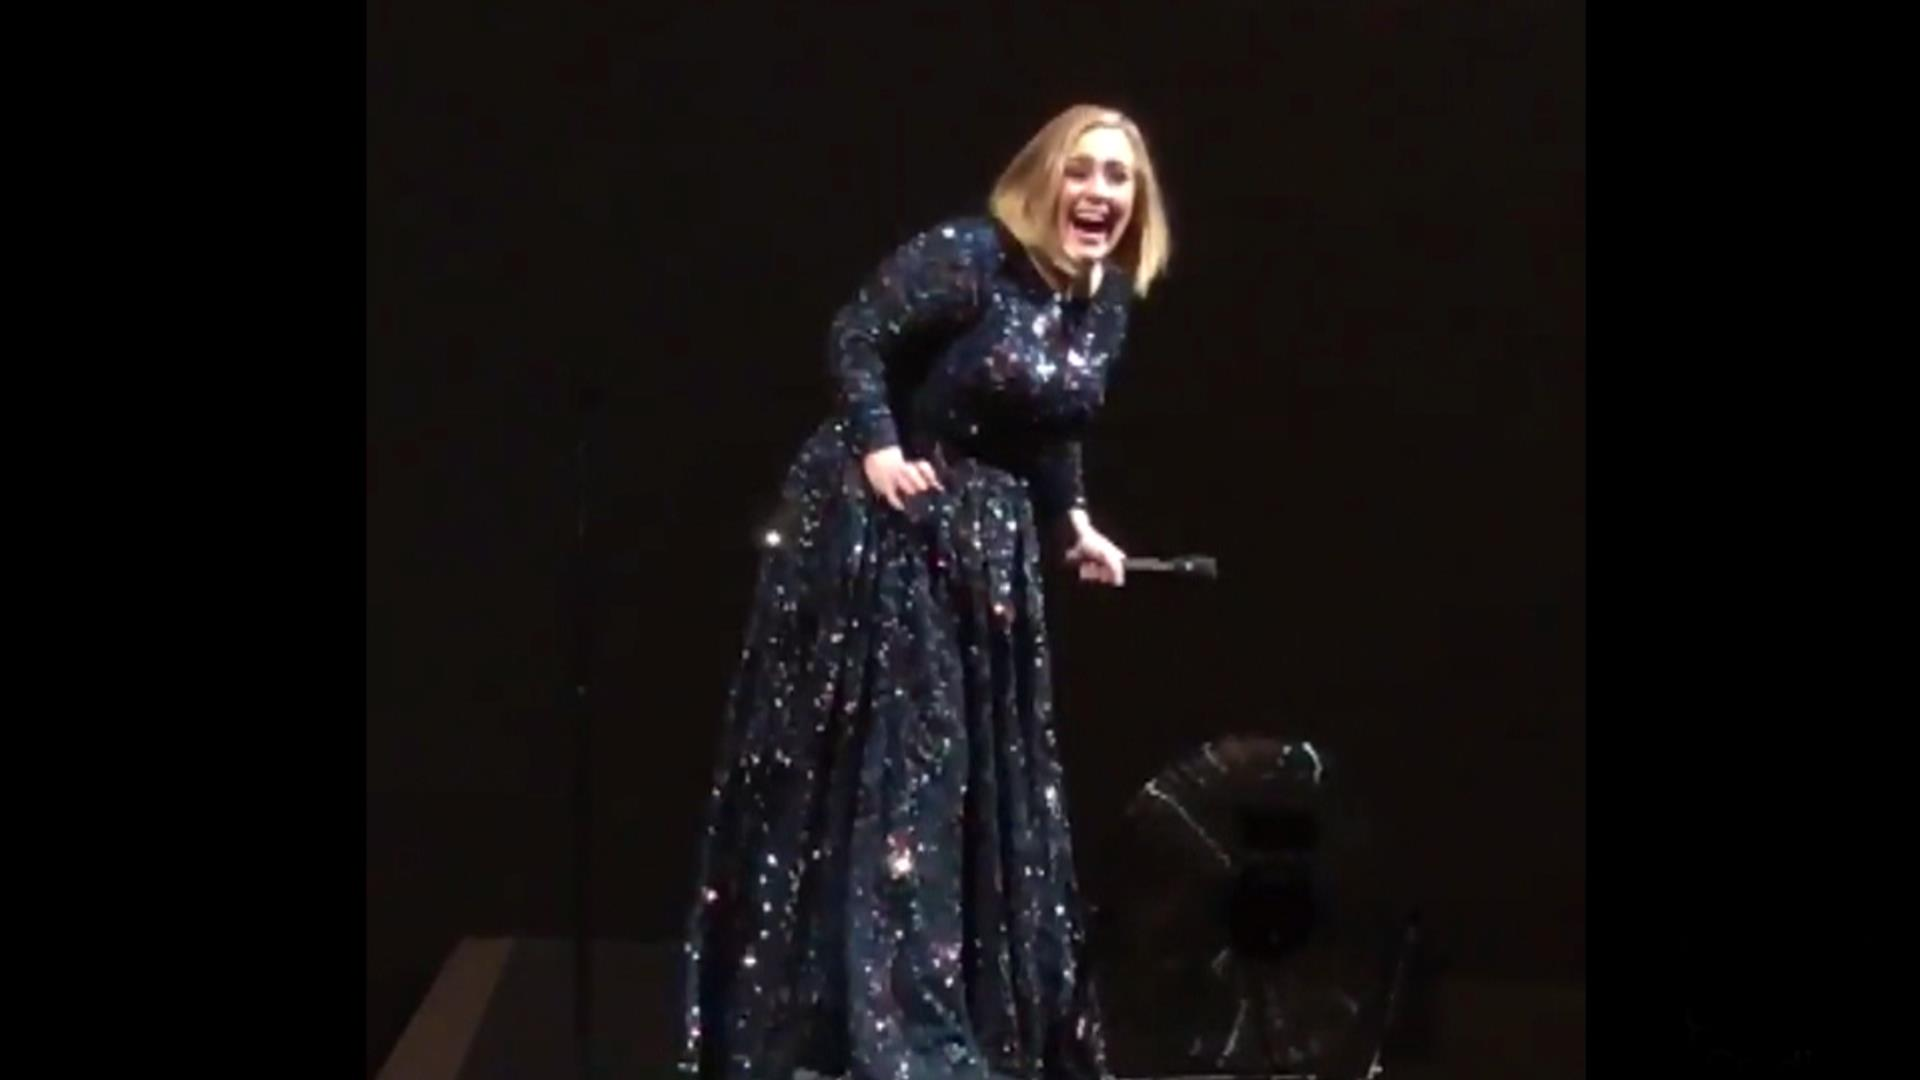 Watch Adele Freak Out After Seeing Bat at Concert